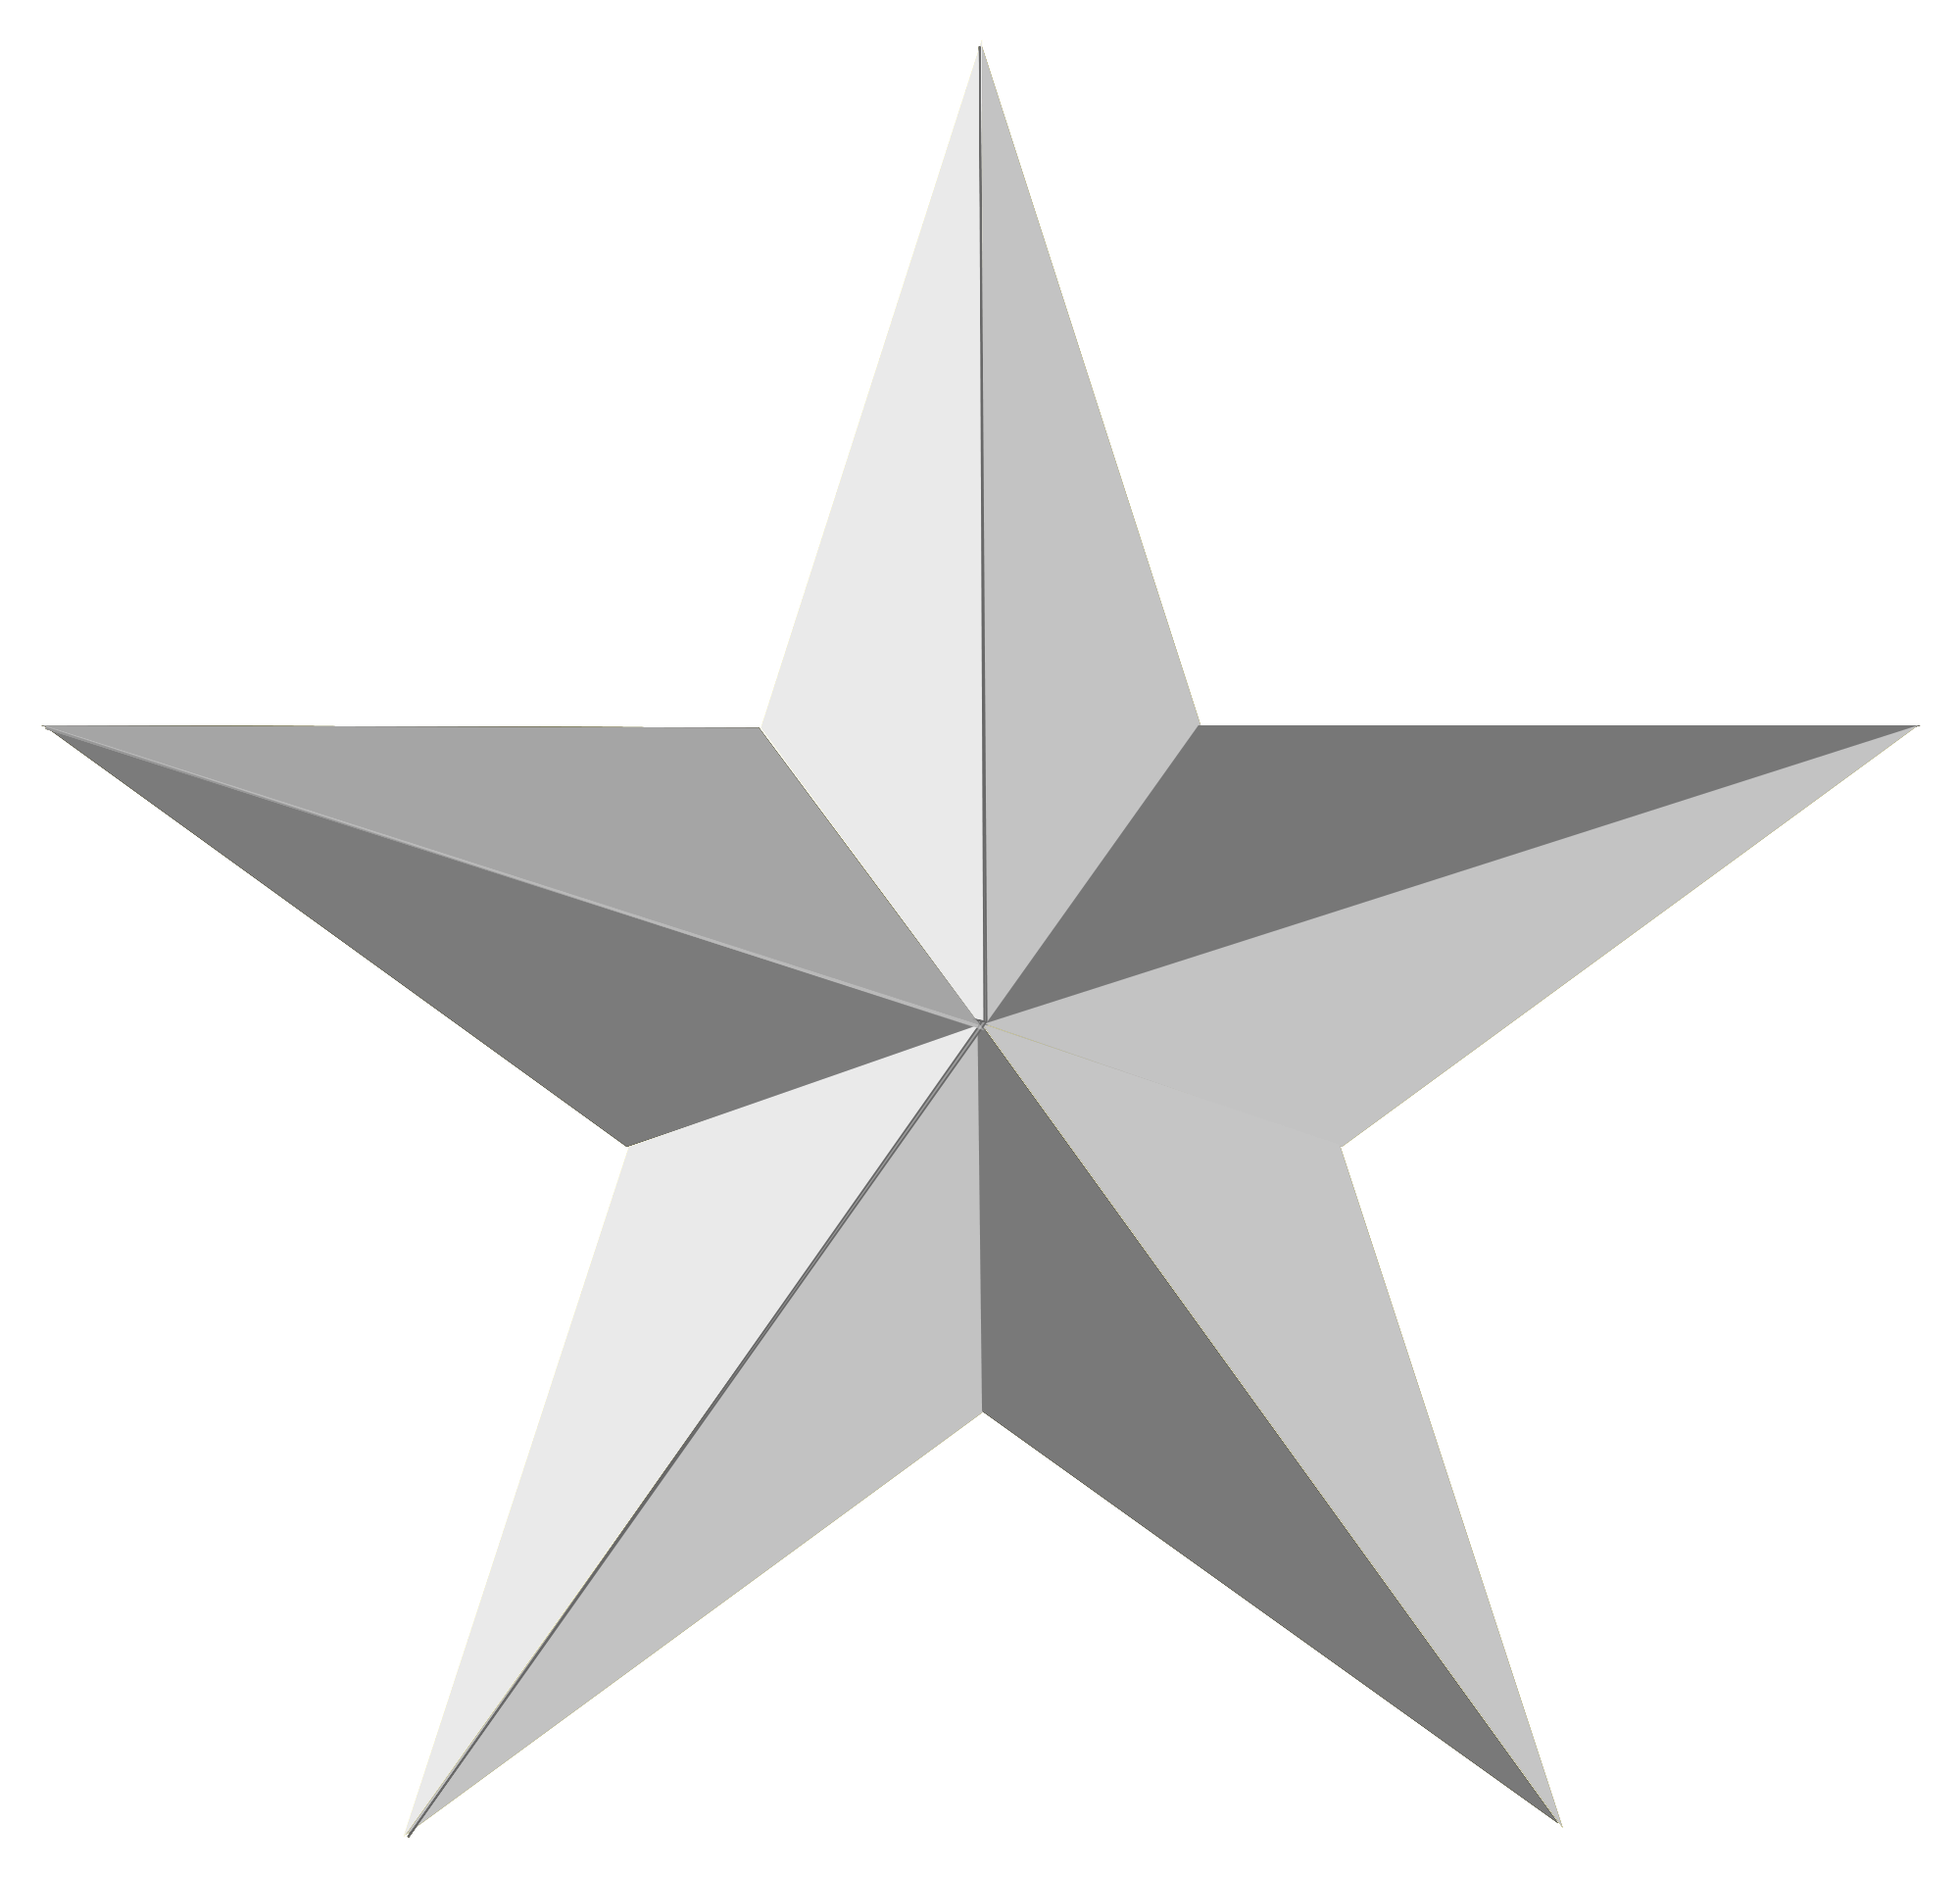 Silver Star Png 6.